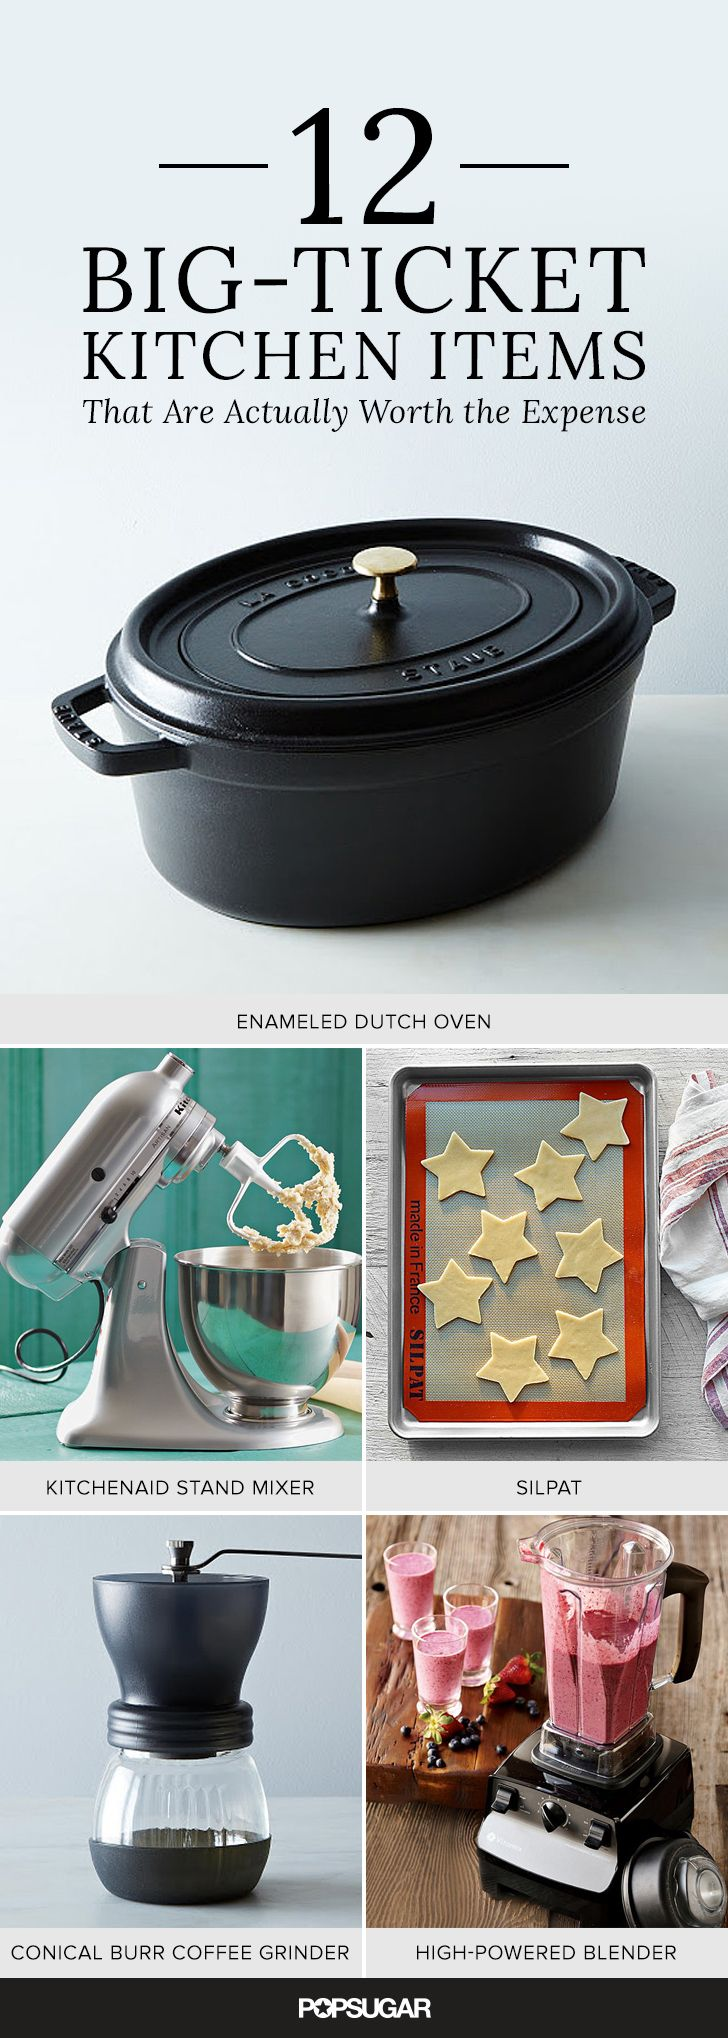 These Are the Kitchen Items That Made Oprah's Favorite Things List This Year